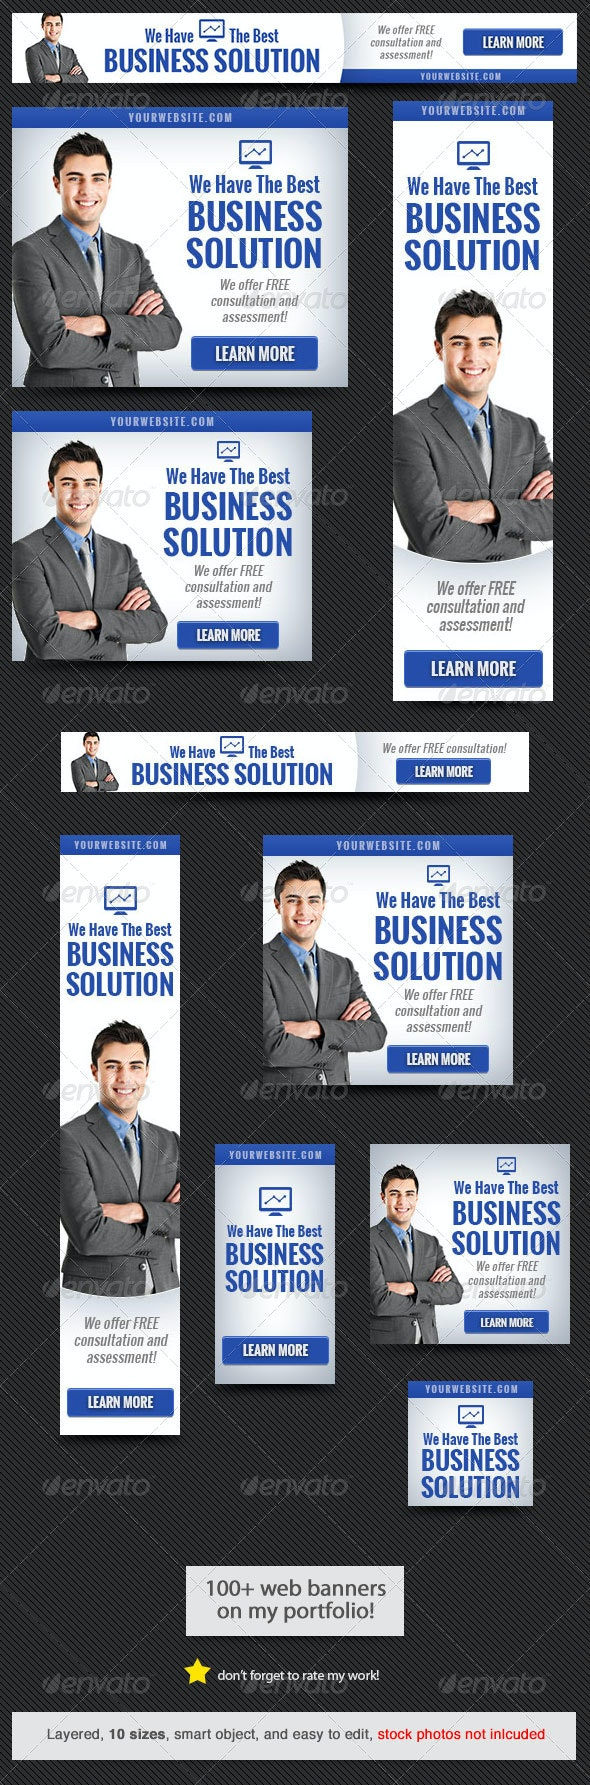 Corporate Web Banner Design Template 49 - Banners & Ads Web Elements